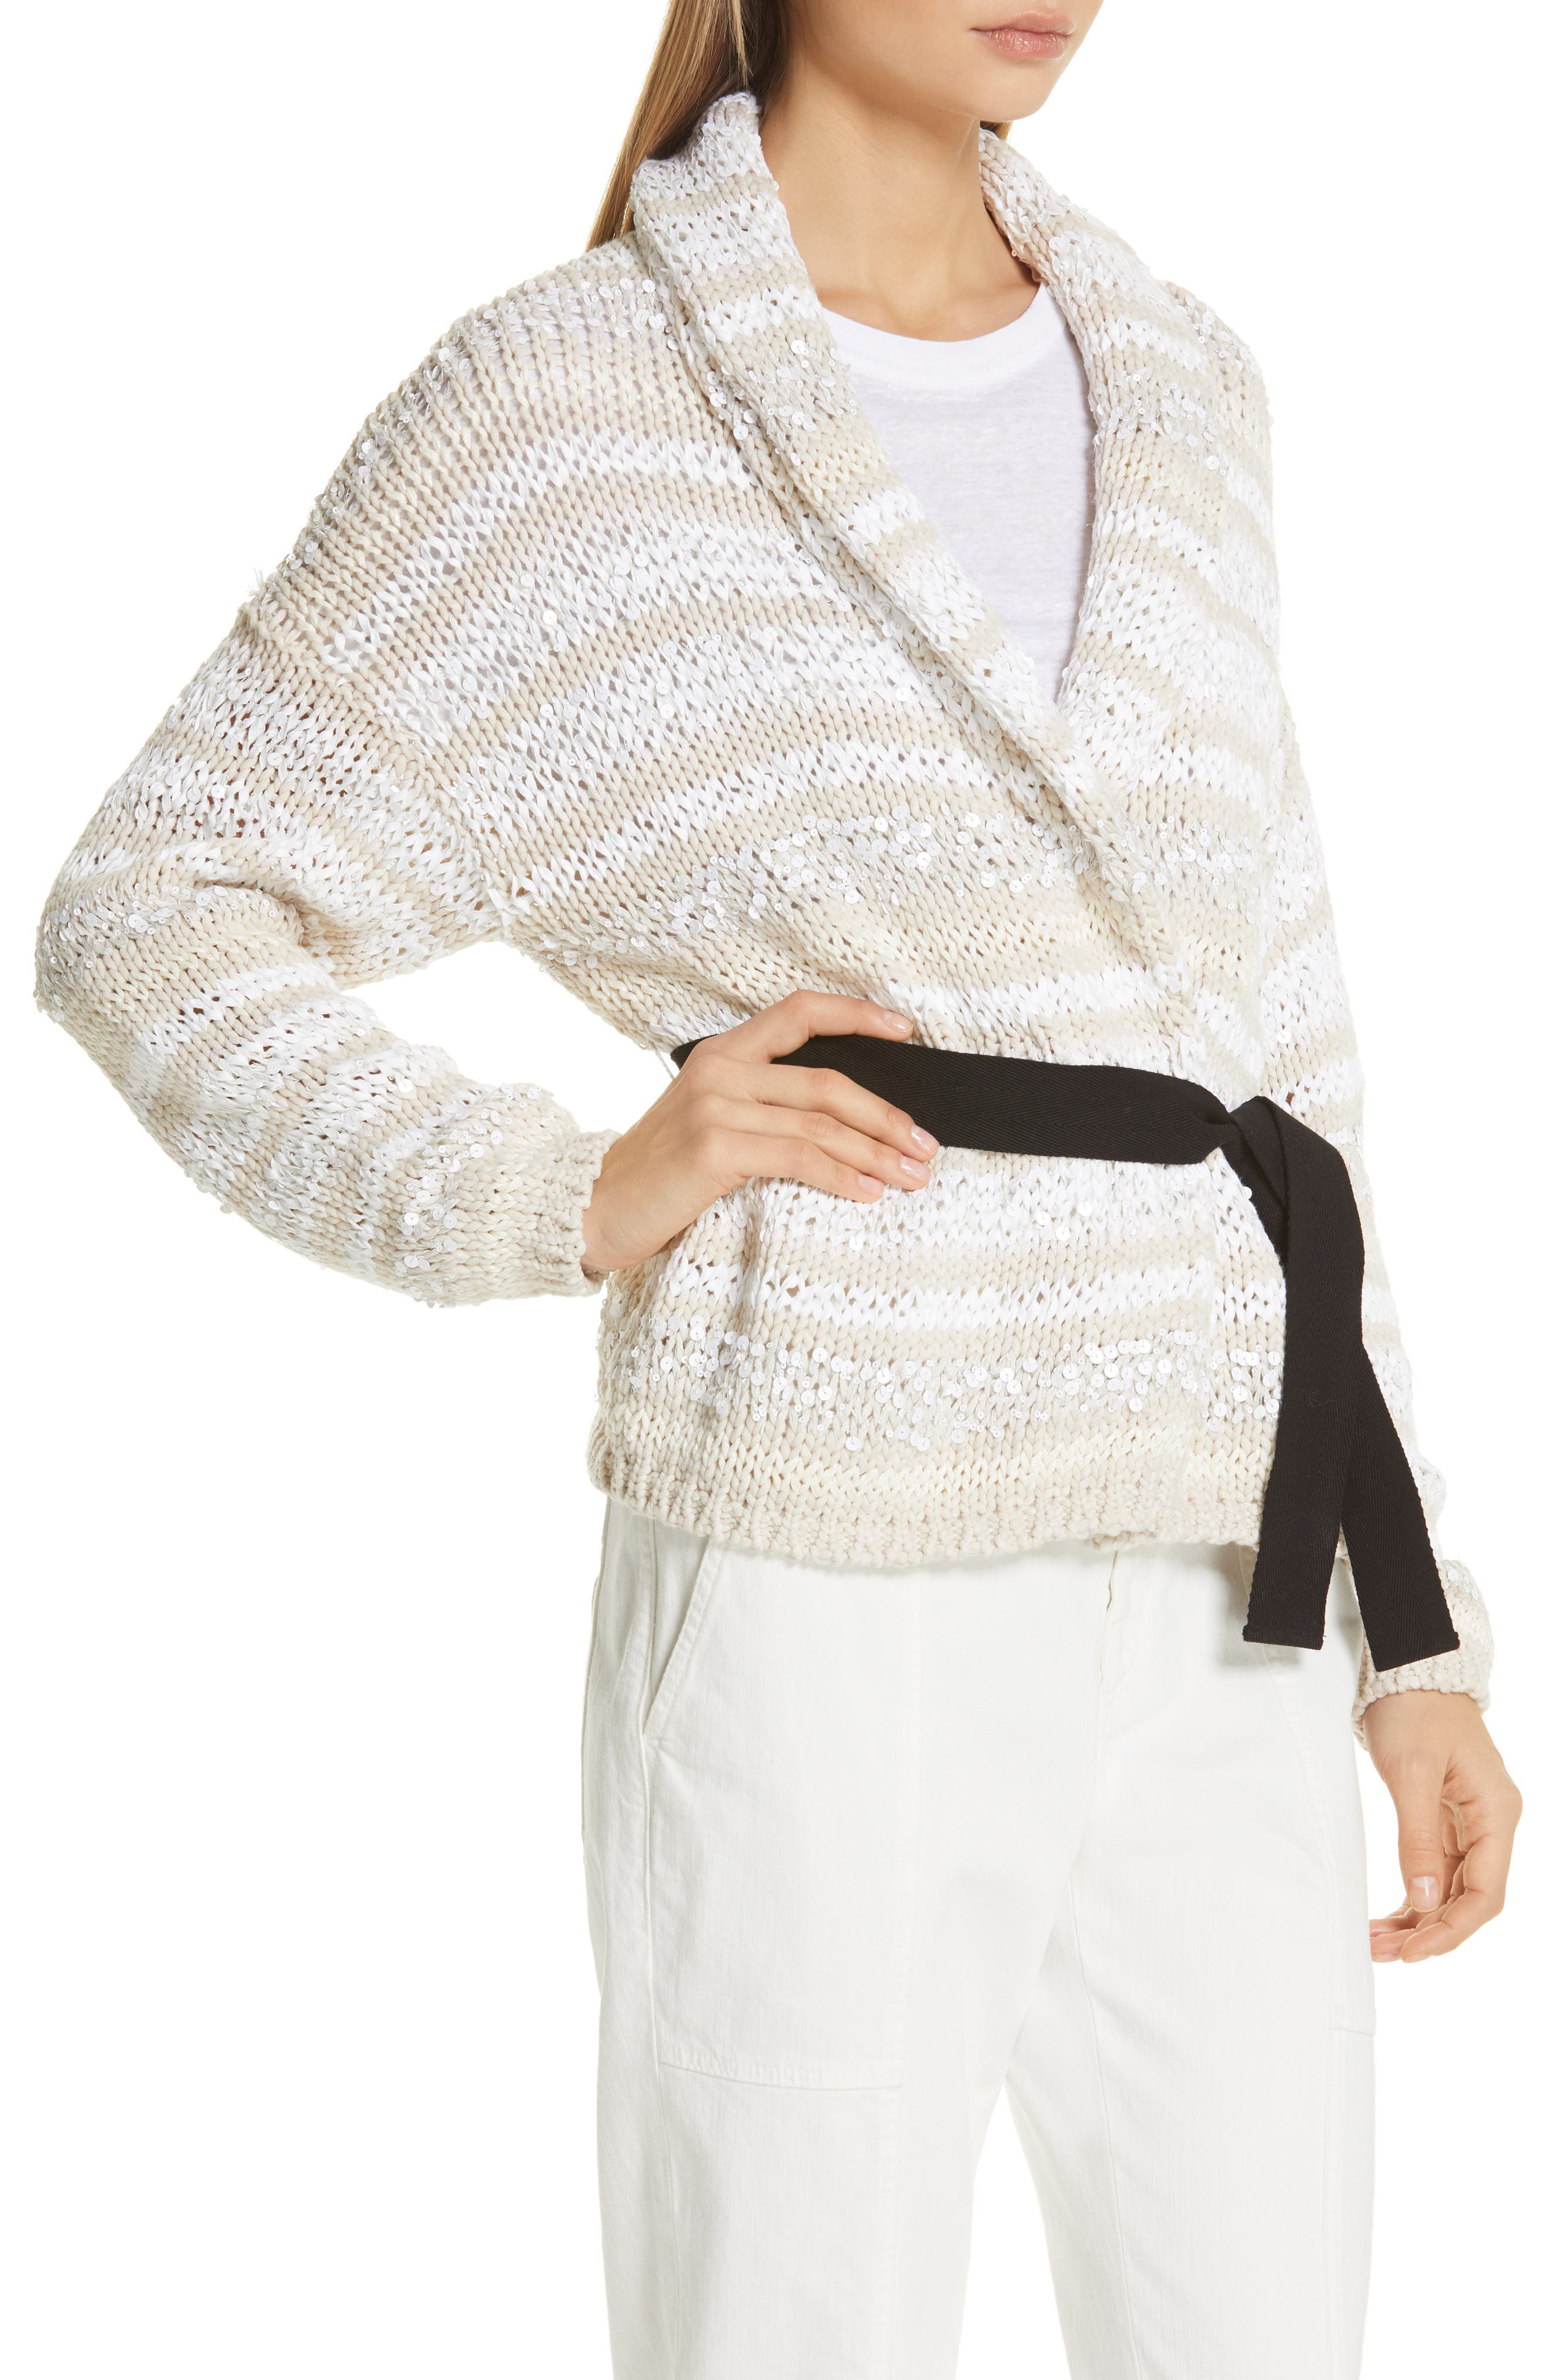 Sequin Stripe Cotton Blend Cardigan,                             Alternate thumbnail 4, color,                             OYSTER